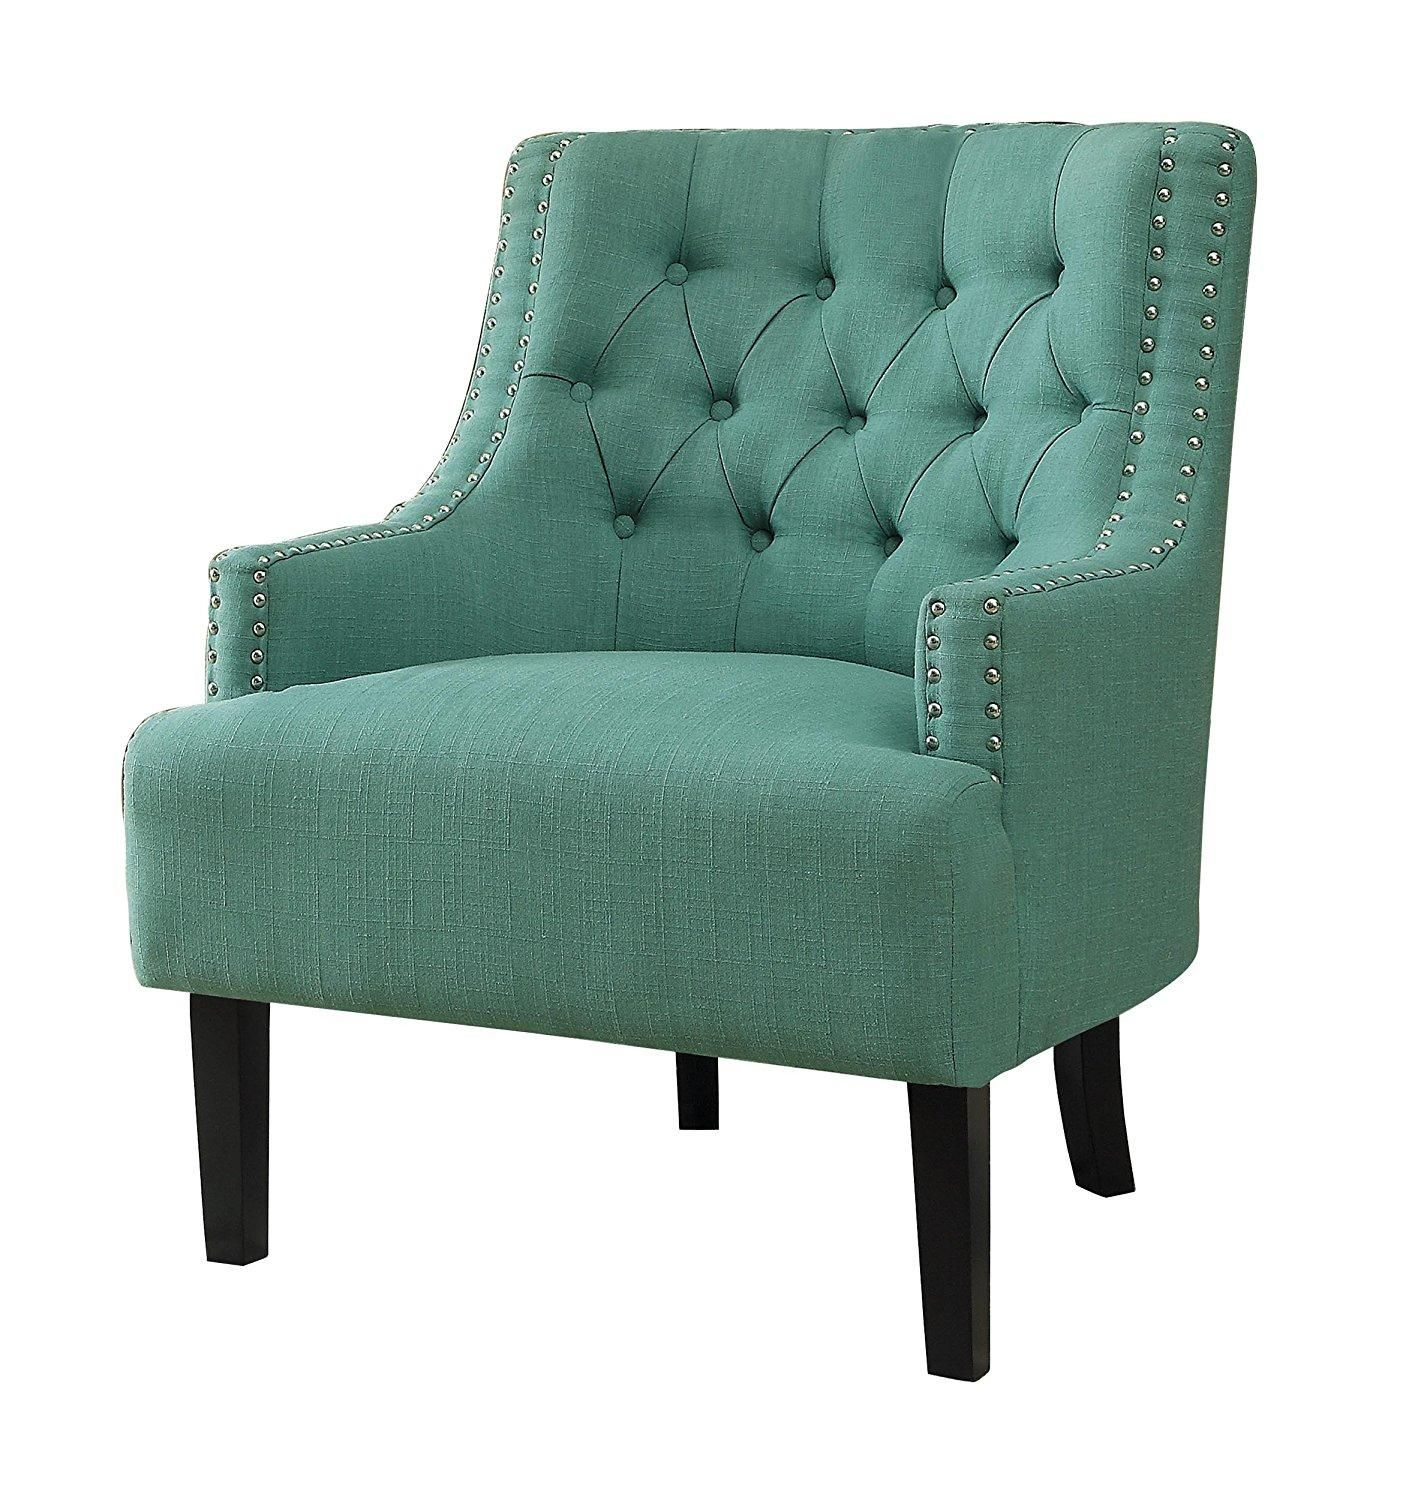 Amazon.com: Homelegance Charisma Accent/Arm Chair, Teal Fabric ...